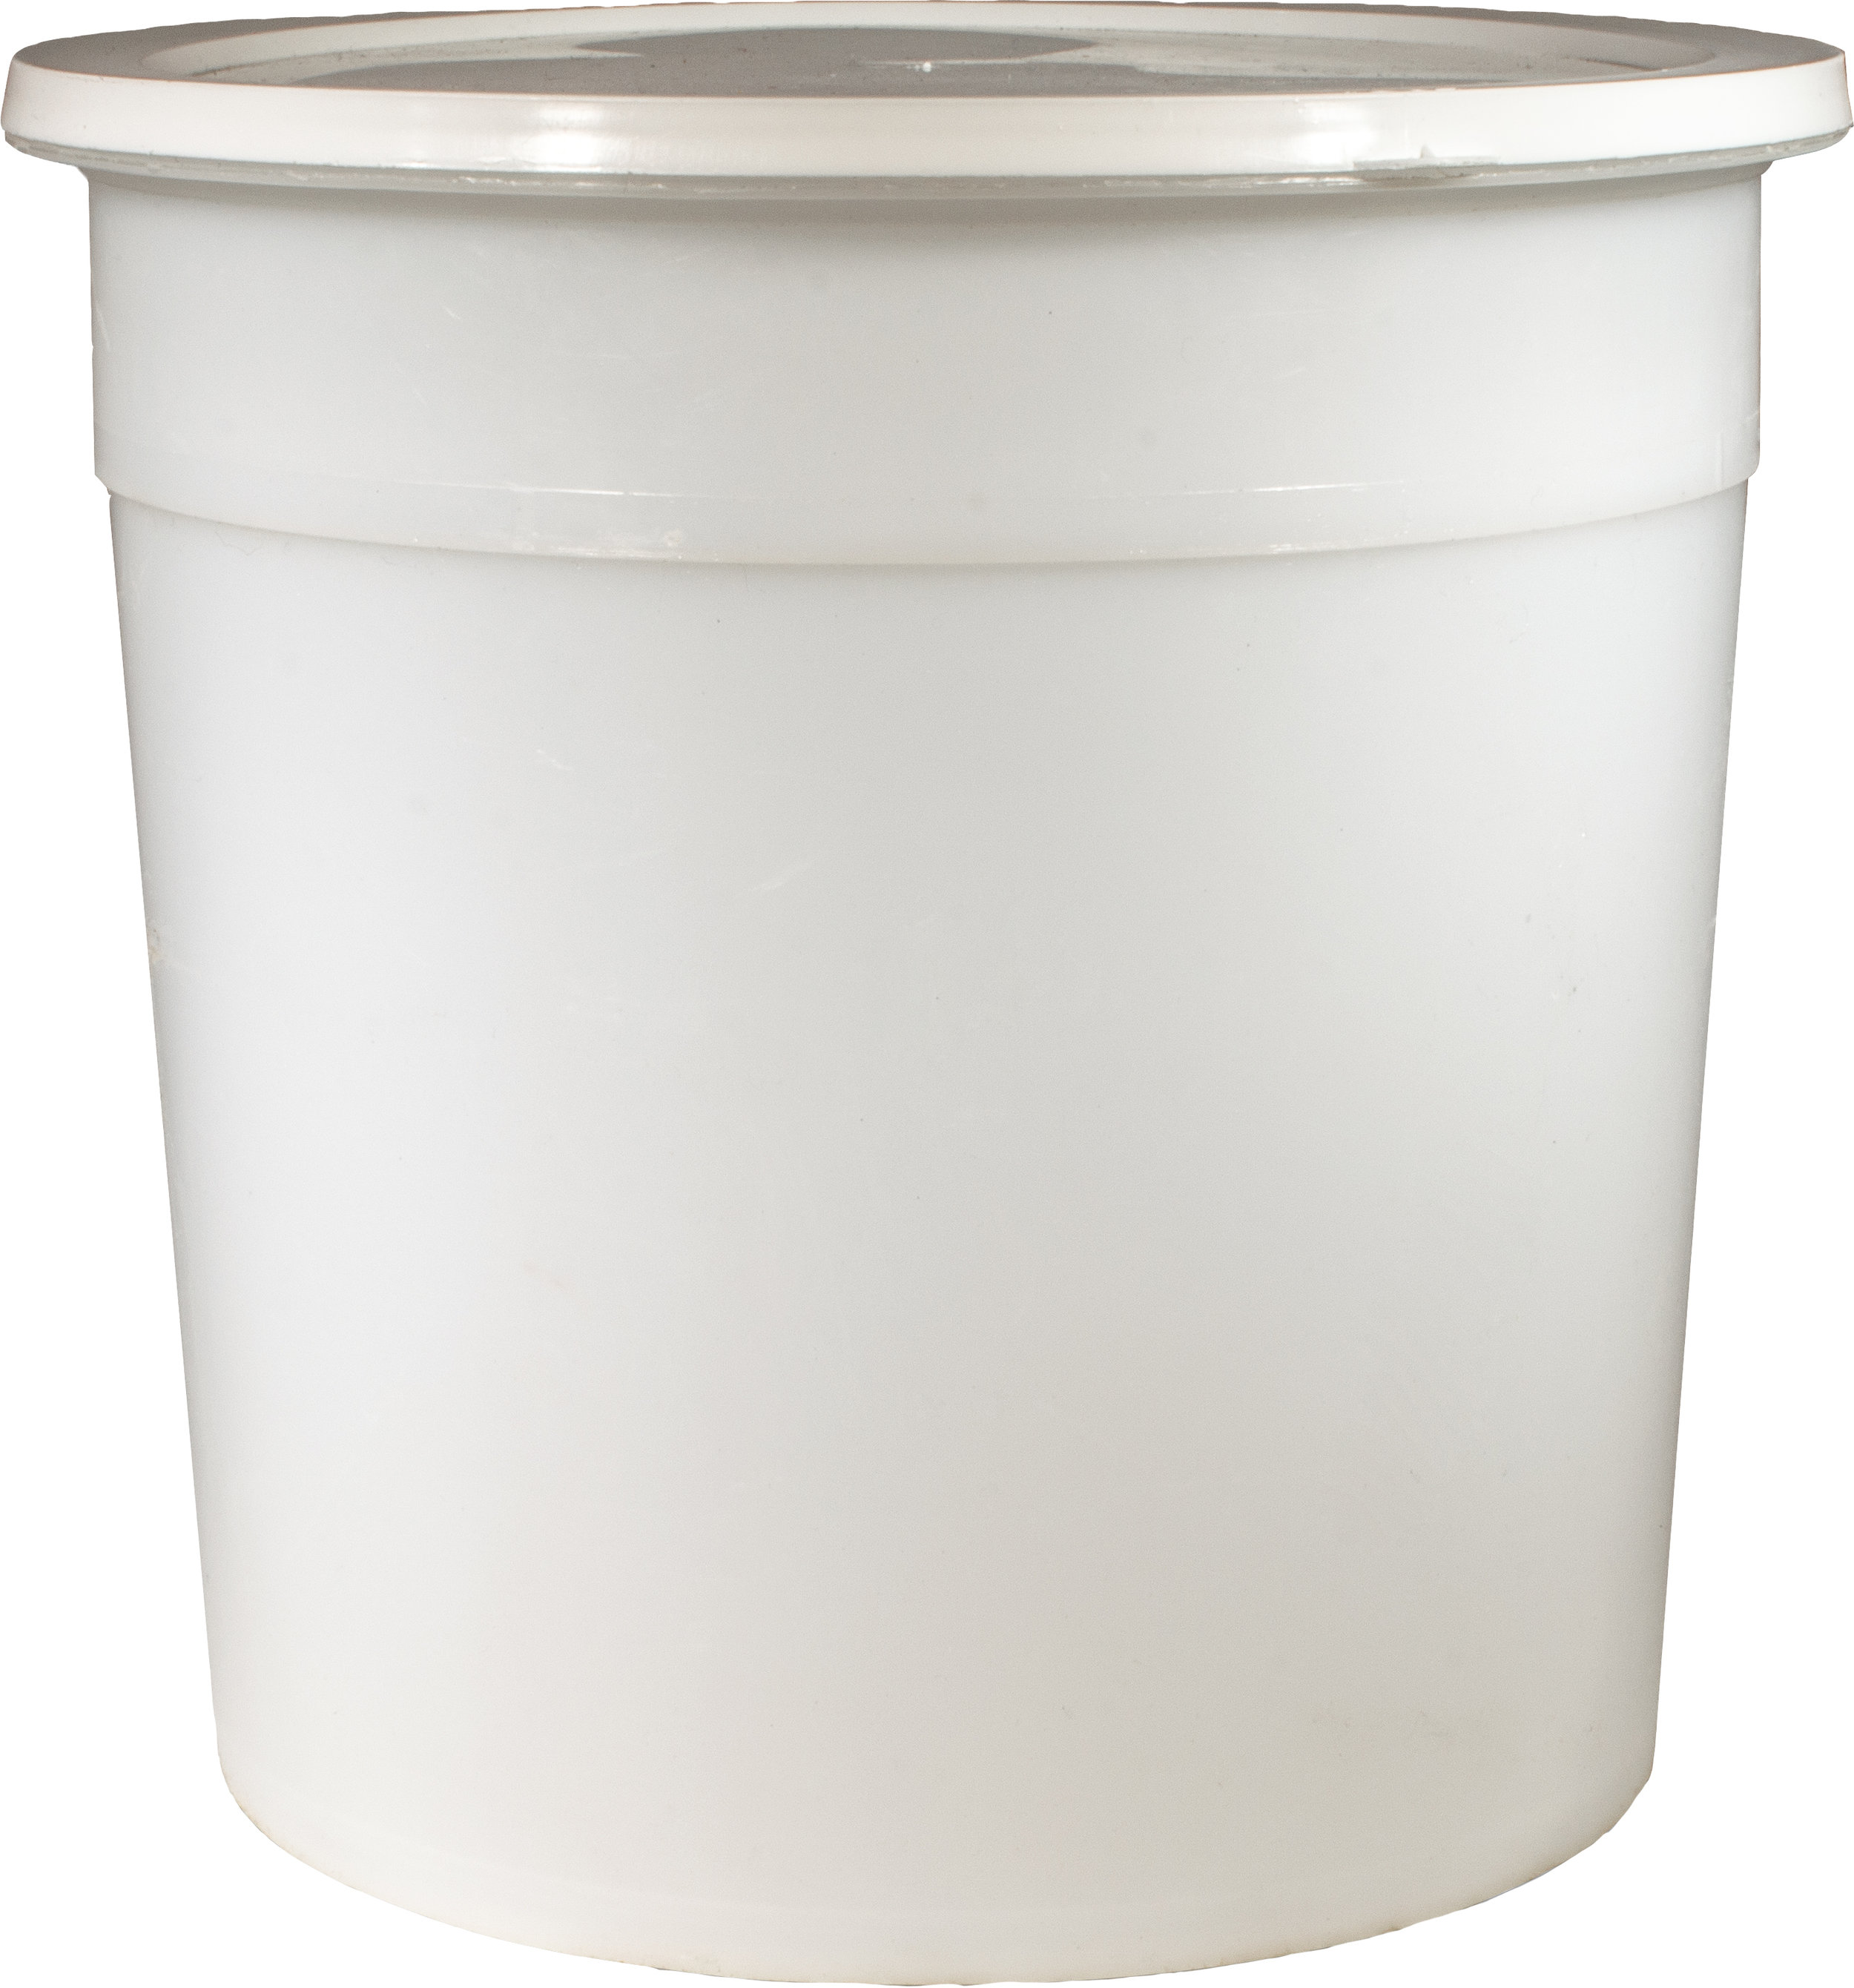 2.5 Gallon Container